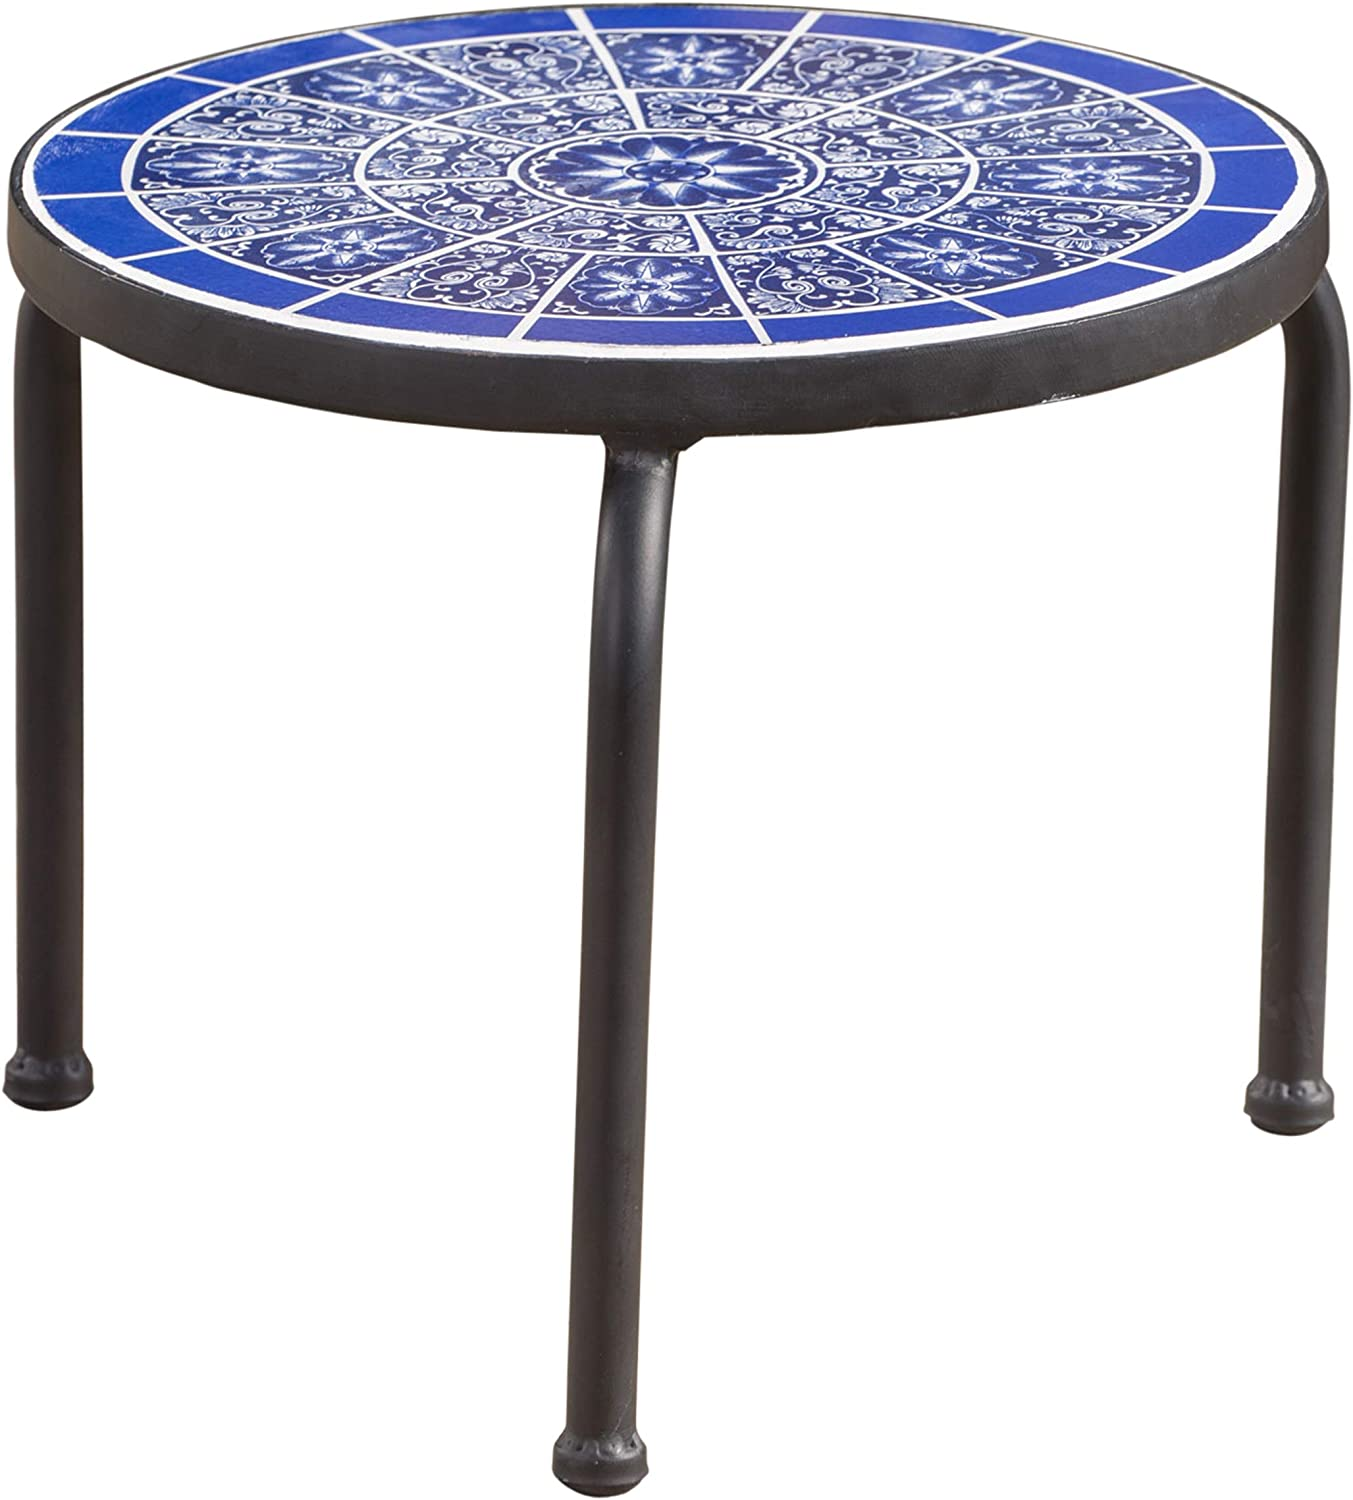 Christopher Knight Home Slate Outdoor Ceramic Tile Side Table with Iron Frame, Blue / White